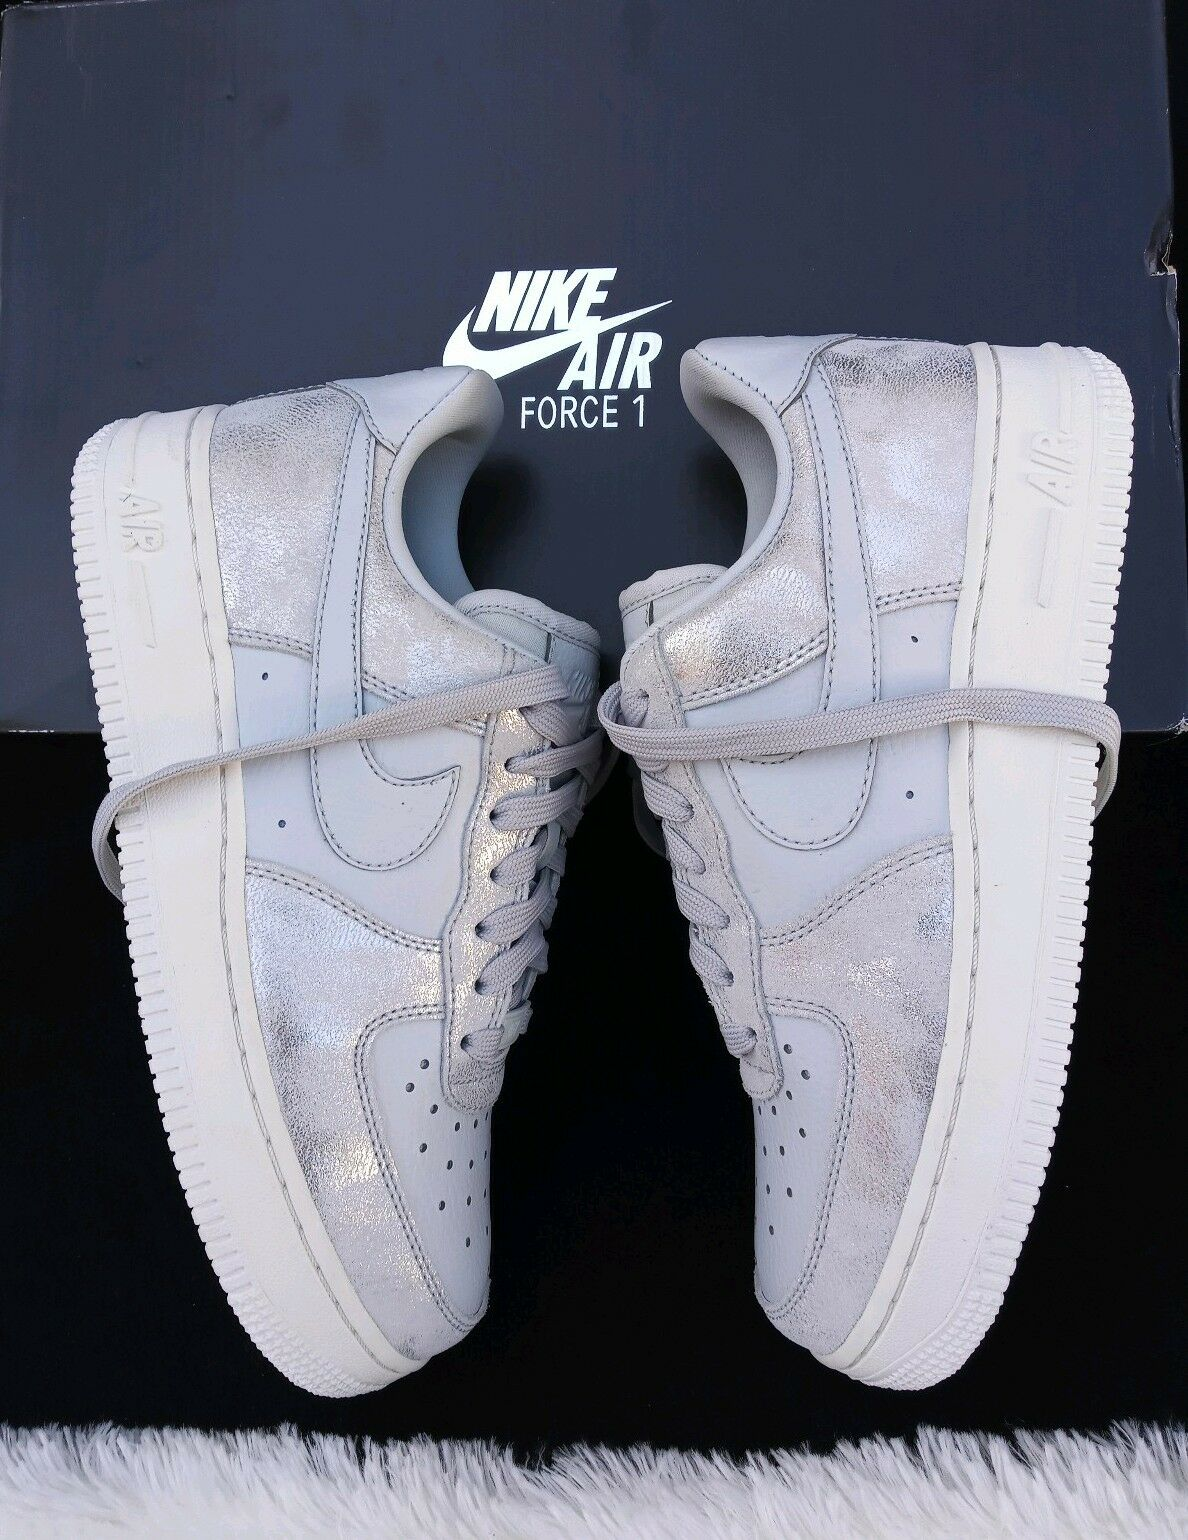 10 WOMENS Nike Air Force 1 '07 LIGHT blueE SHINE Sneakers 616125 011 casual shoes